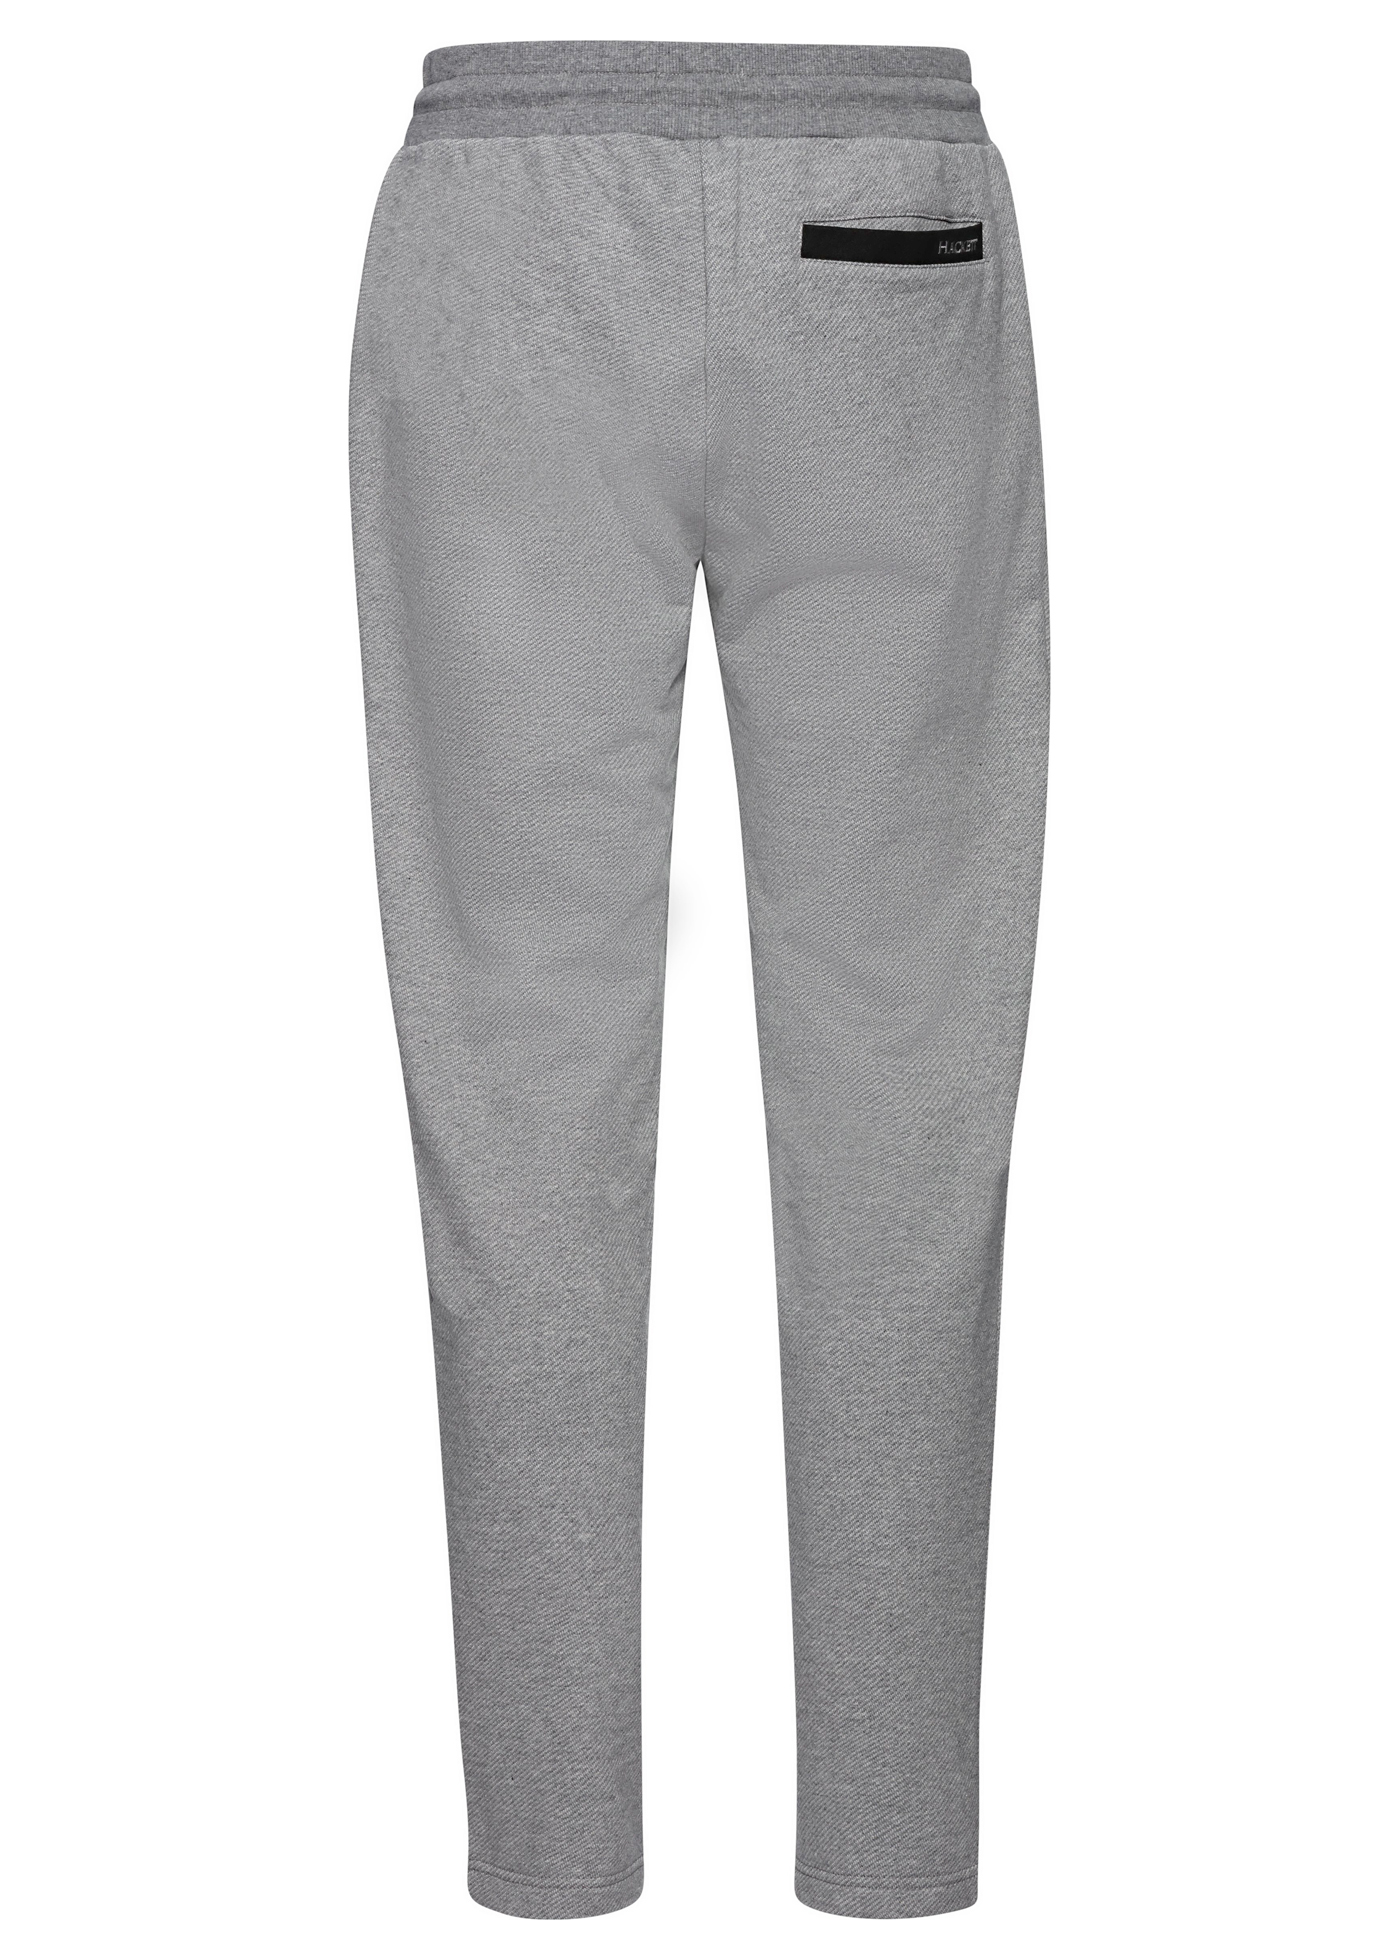 REFINED JOGGER image number 1